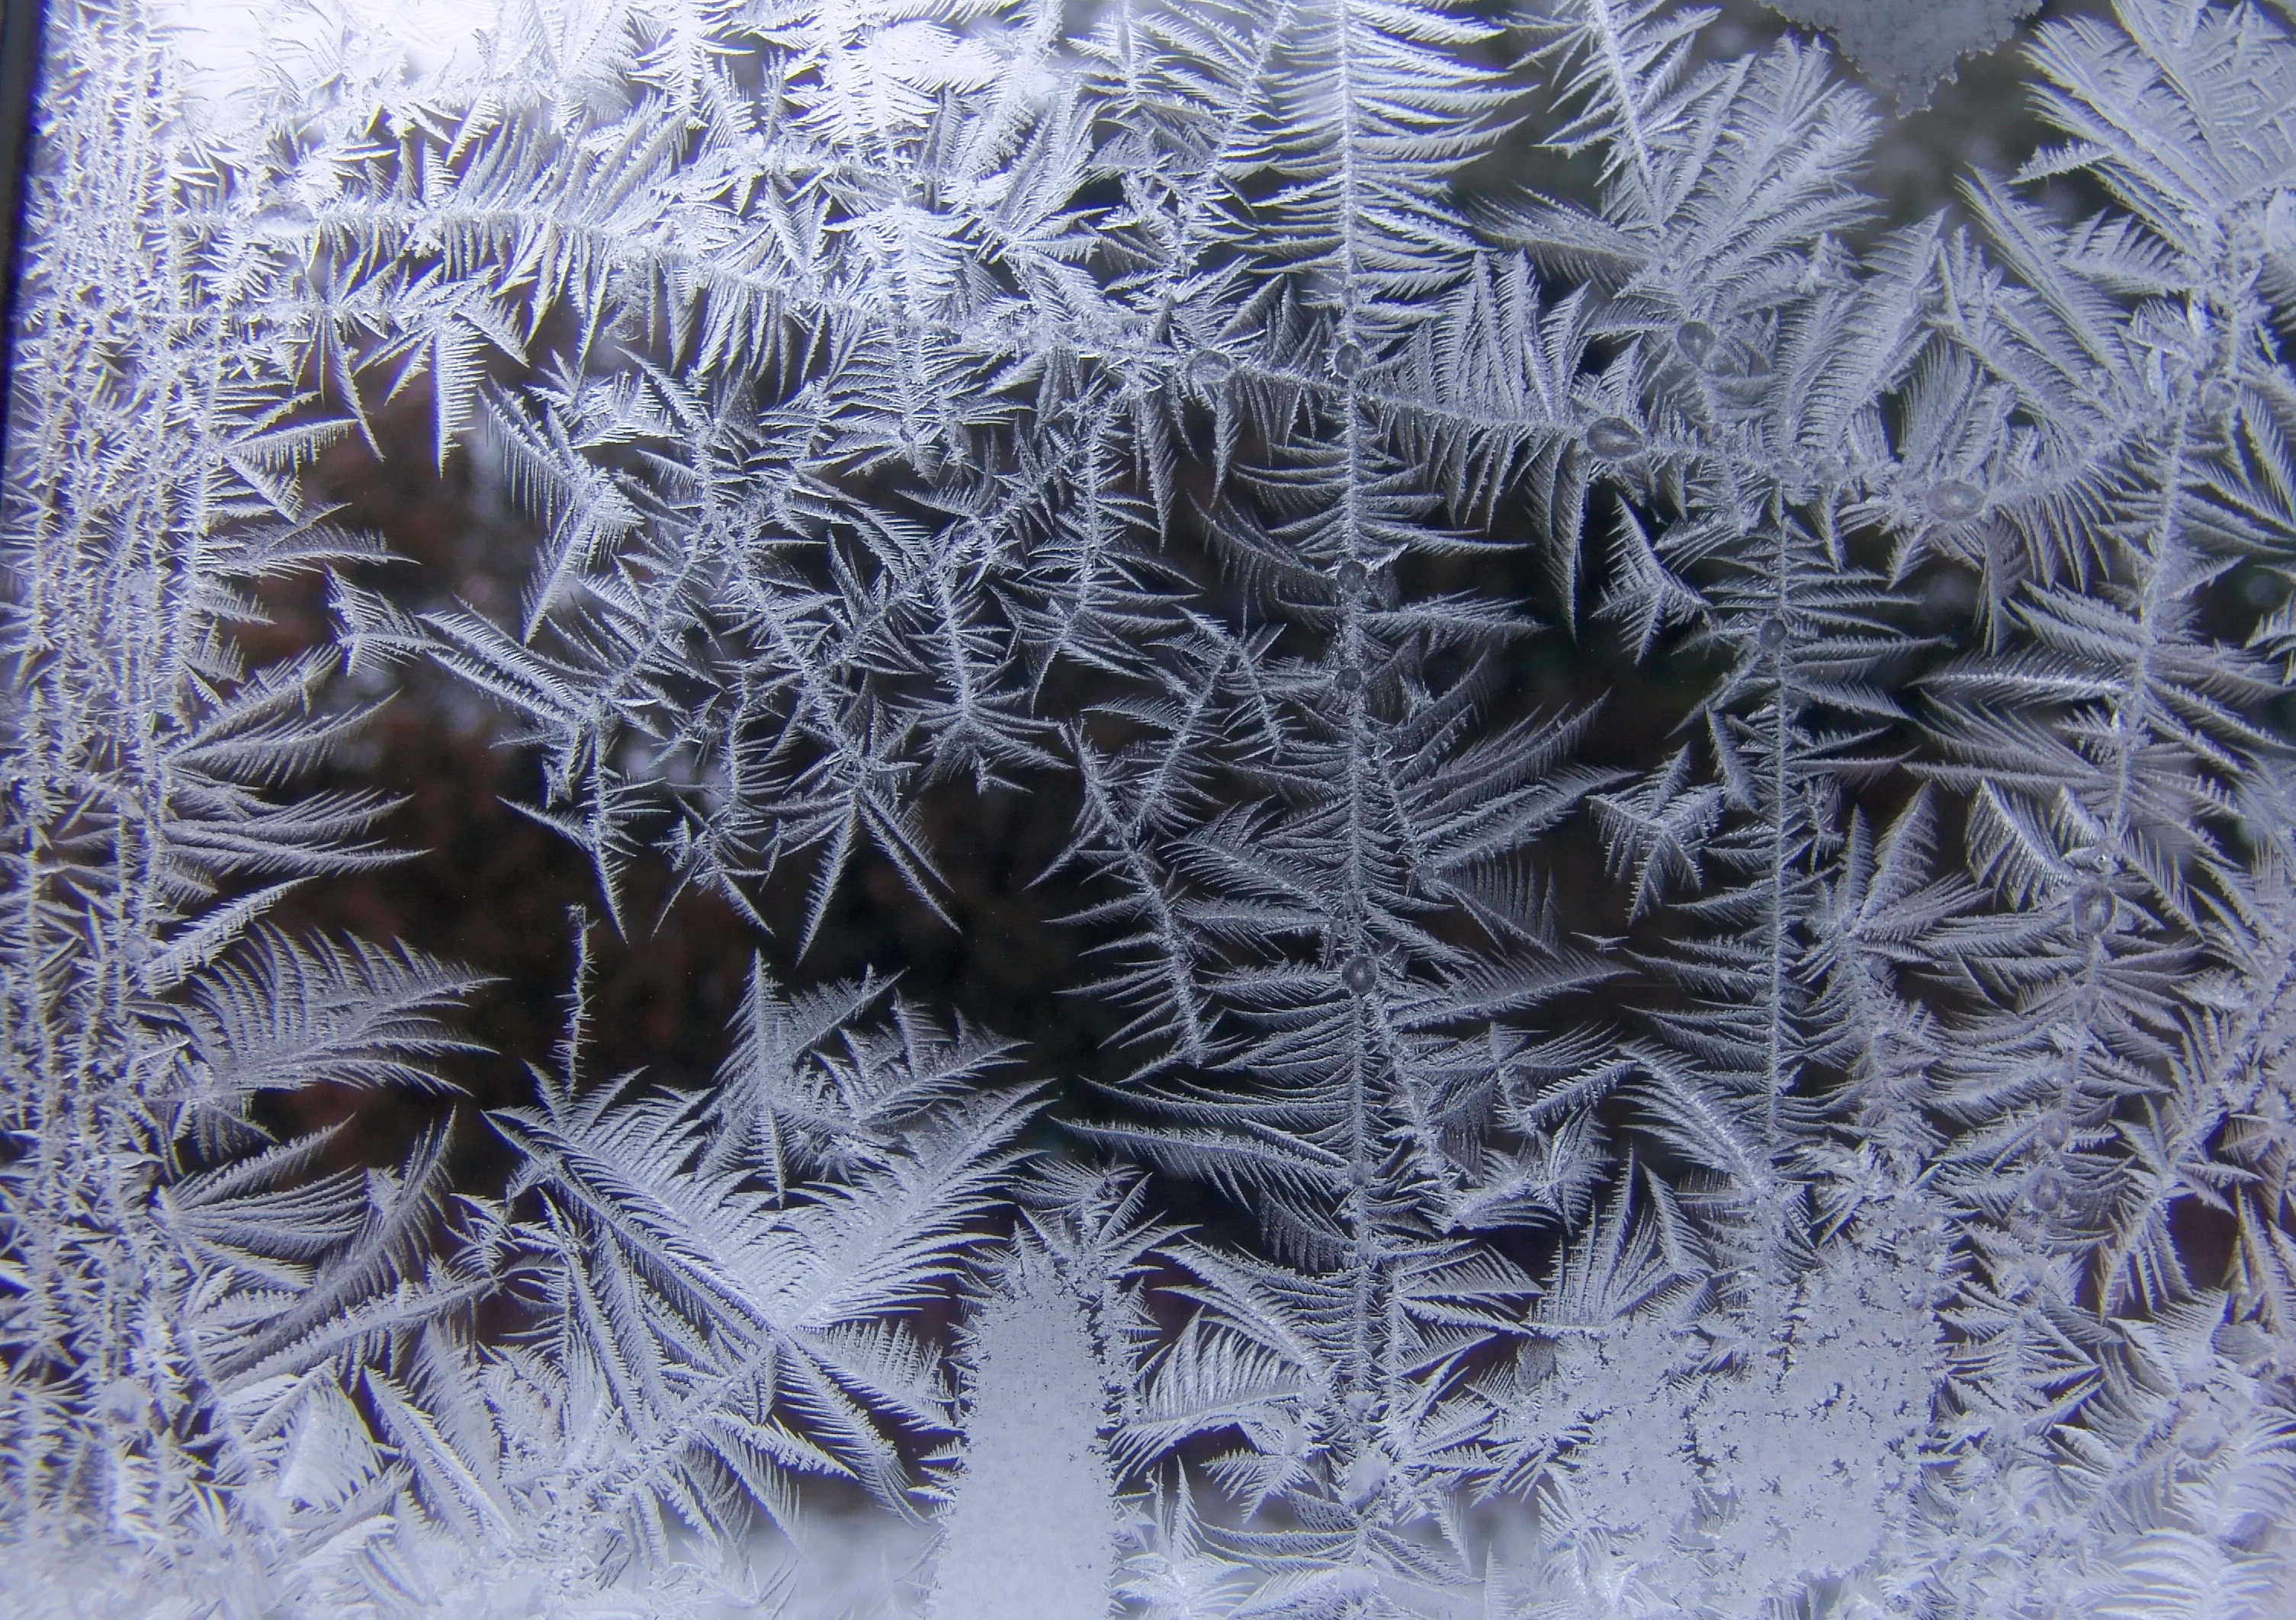 Windows Fall Wallpaper File Ice Crystals At Window07 Jpg Wikimedia Commons